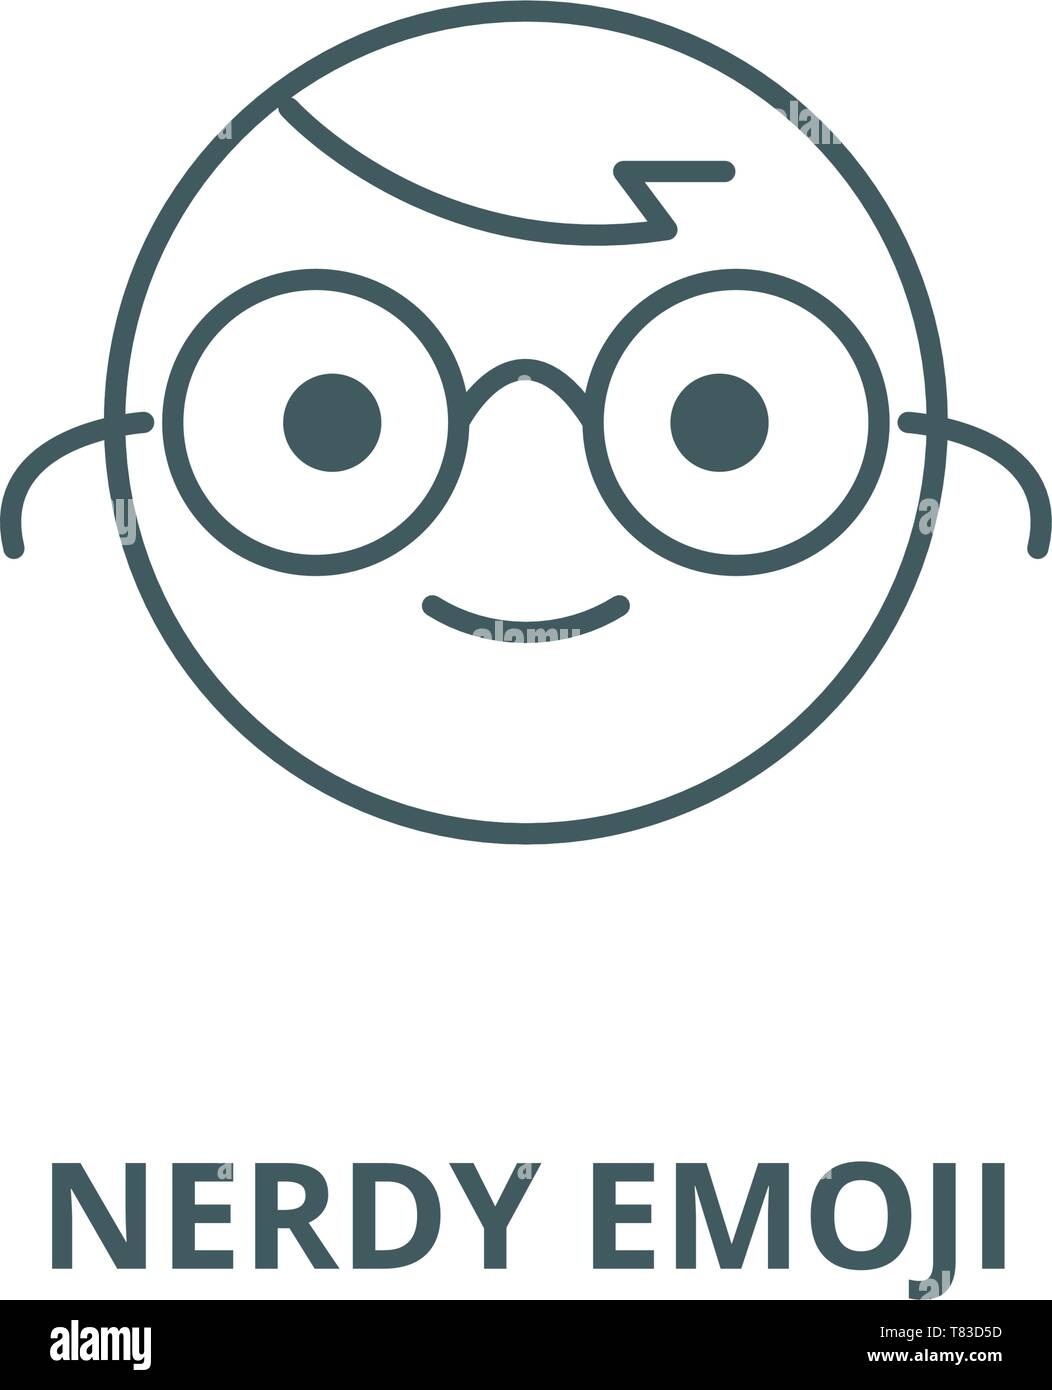 Nerdy emoji vector line icon, linear concept, outline sign, symbol - Stock Image